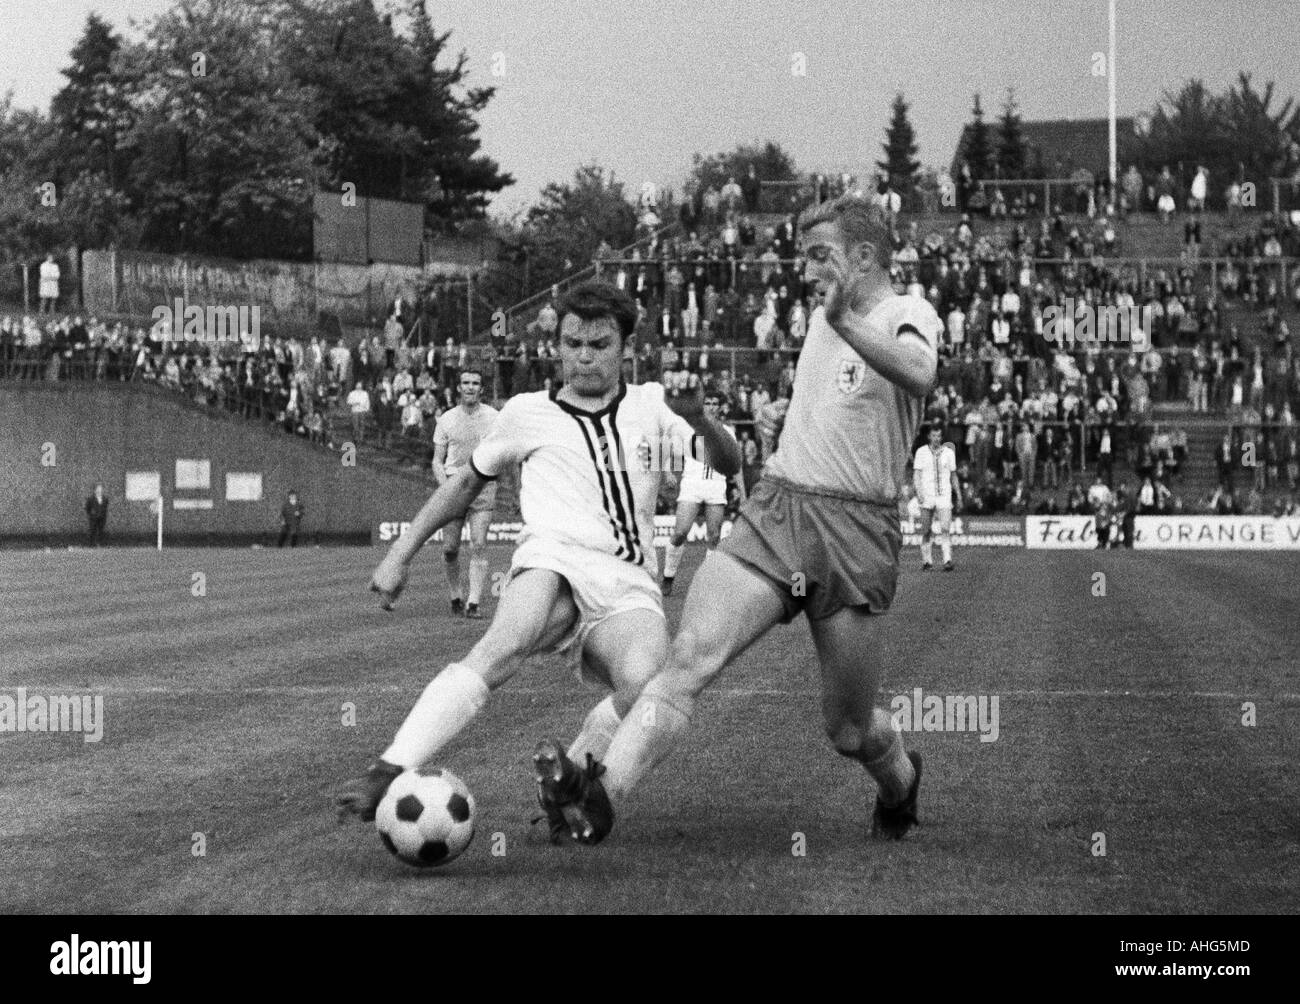 football, Bundesliga, 1968/1969, Boekelberg Stadium, Borussia Moenchengladbach versus Eintracht Brunswick 1:1, scene of the match, duel between Herbert Laumen (Gladbach) left and Peter Kaack (Braunschweig) - Stock Image